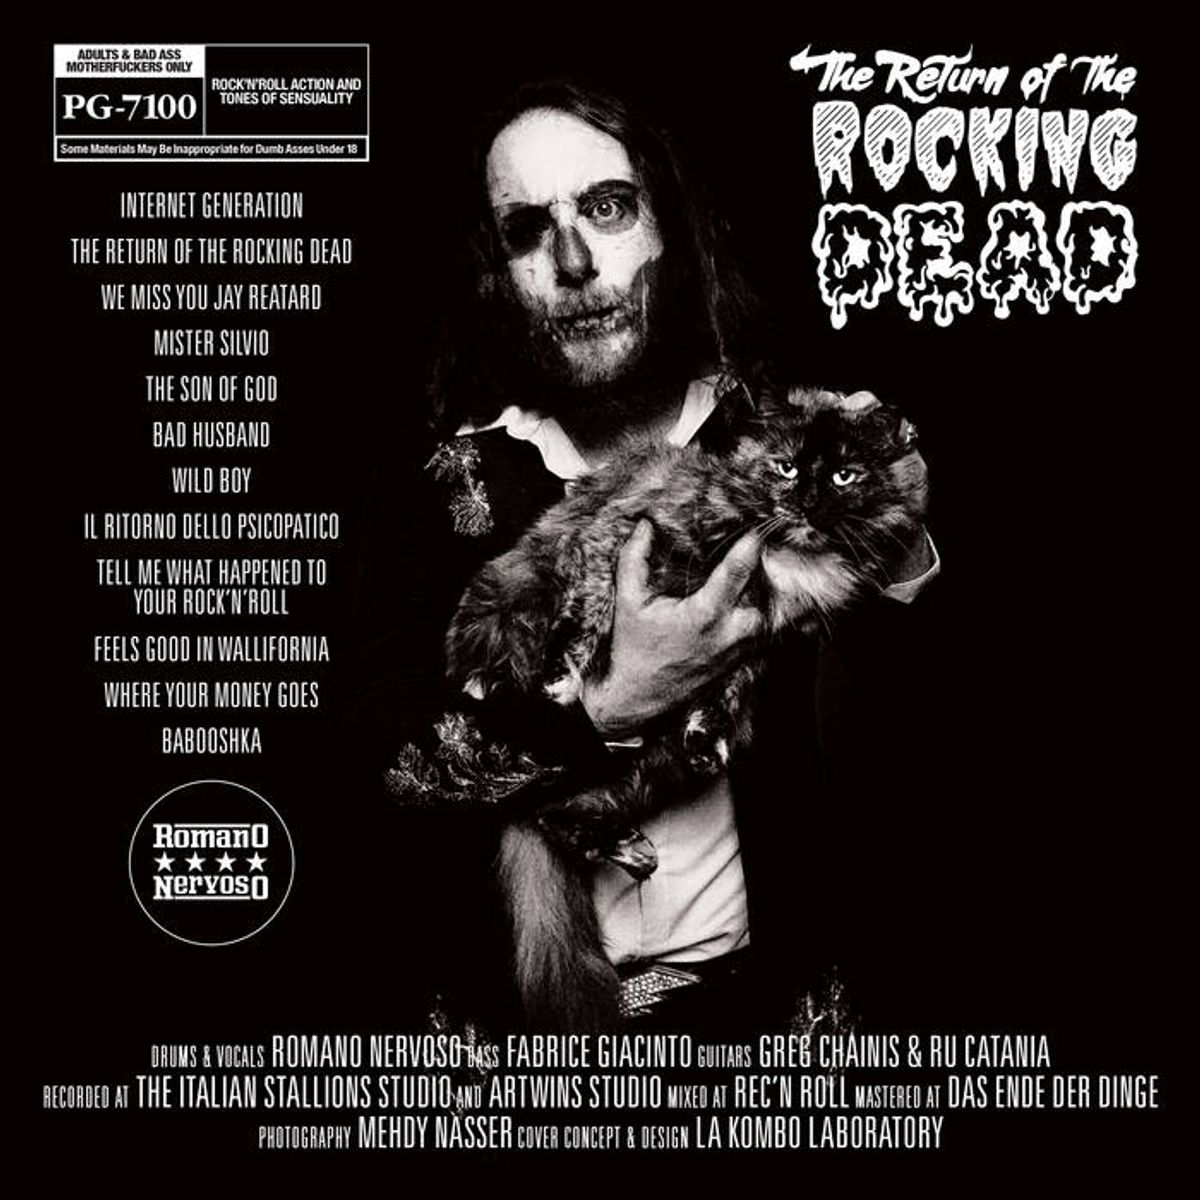 The Return Of The Rocking Dead